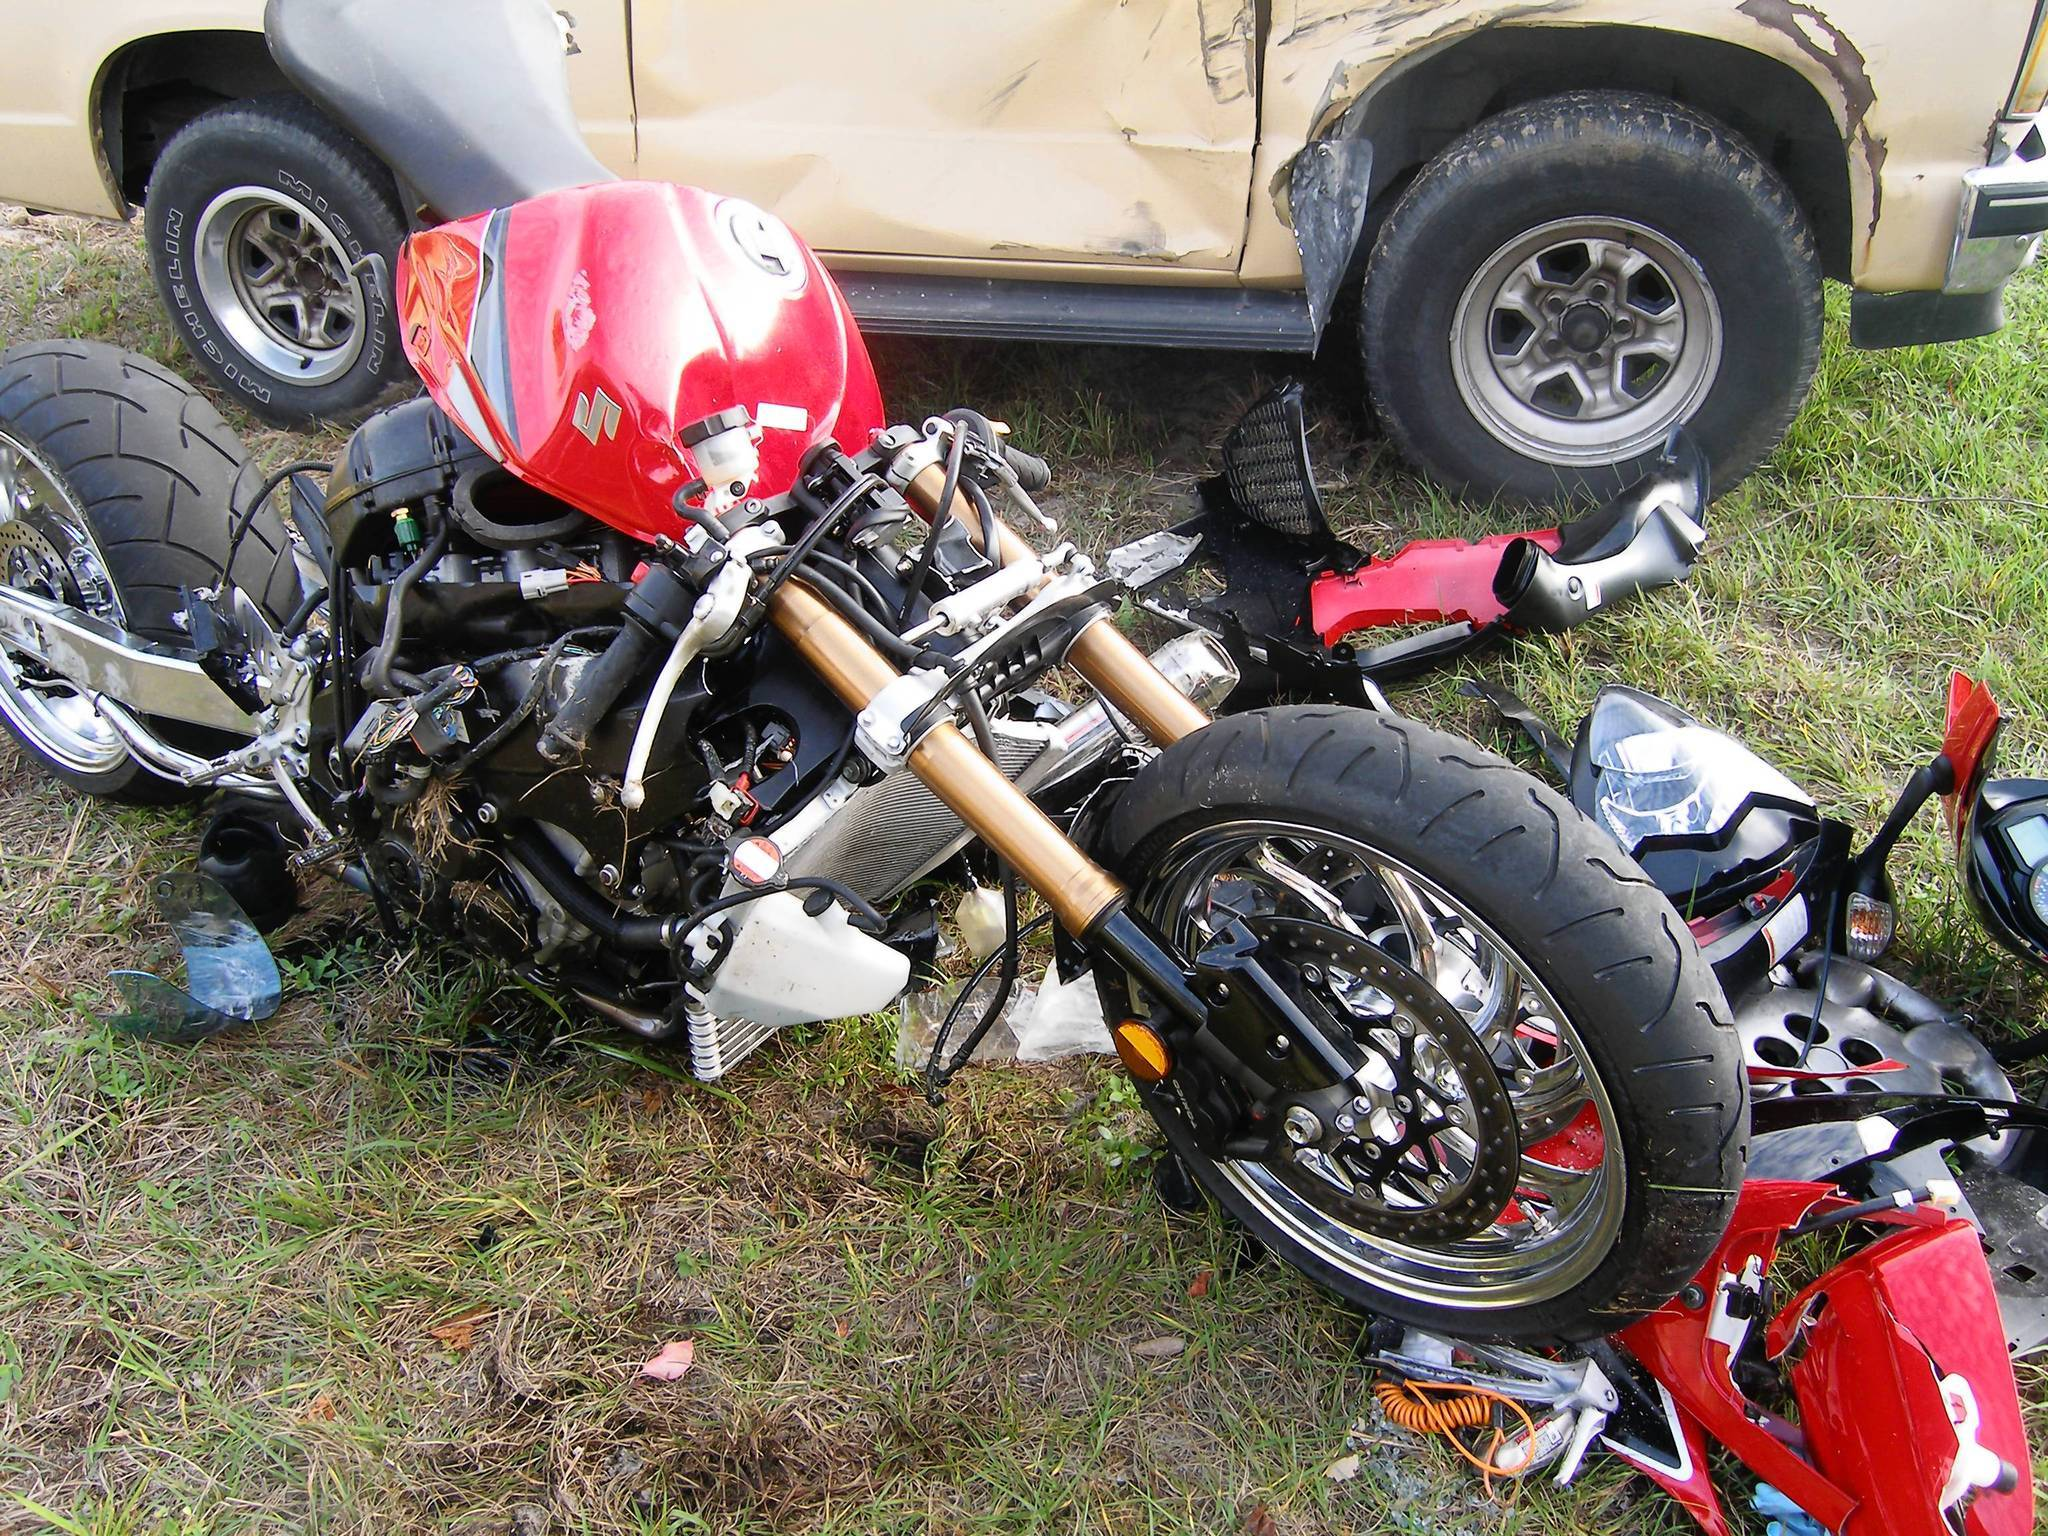 Anthony Thomason's Suzuki: The front wheel and fork were not damaged -- evidence, one expert said, that he was popping a wheelie when he crashed. (Florida Highway Patrol)